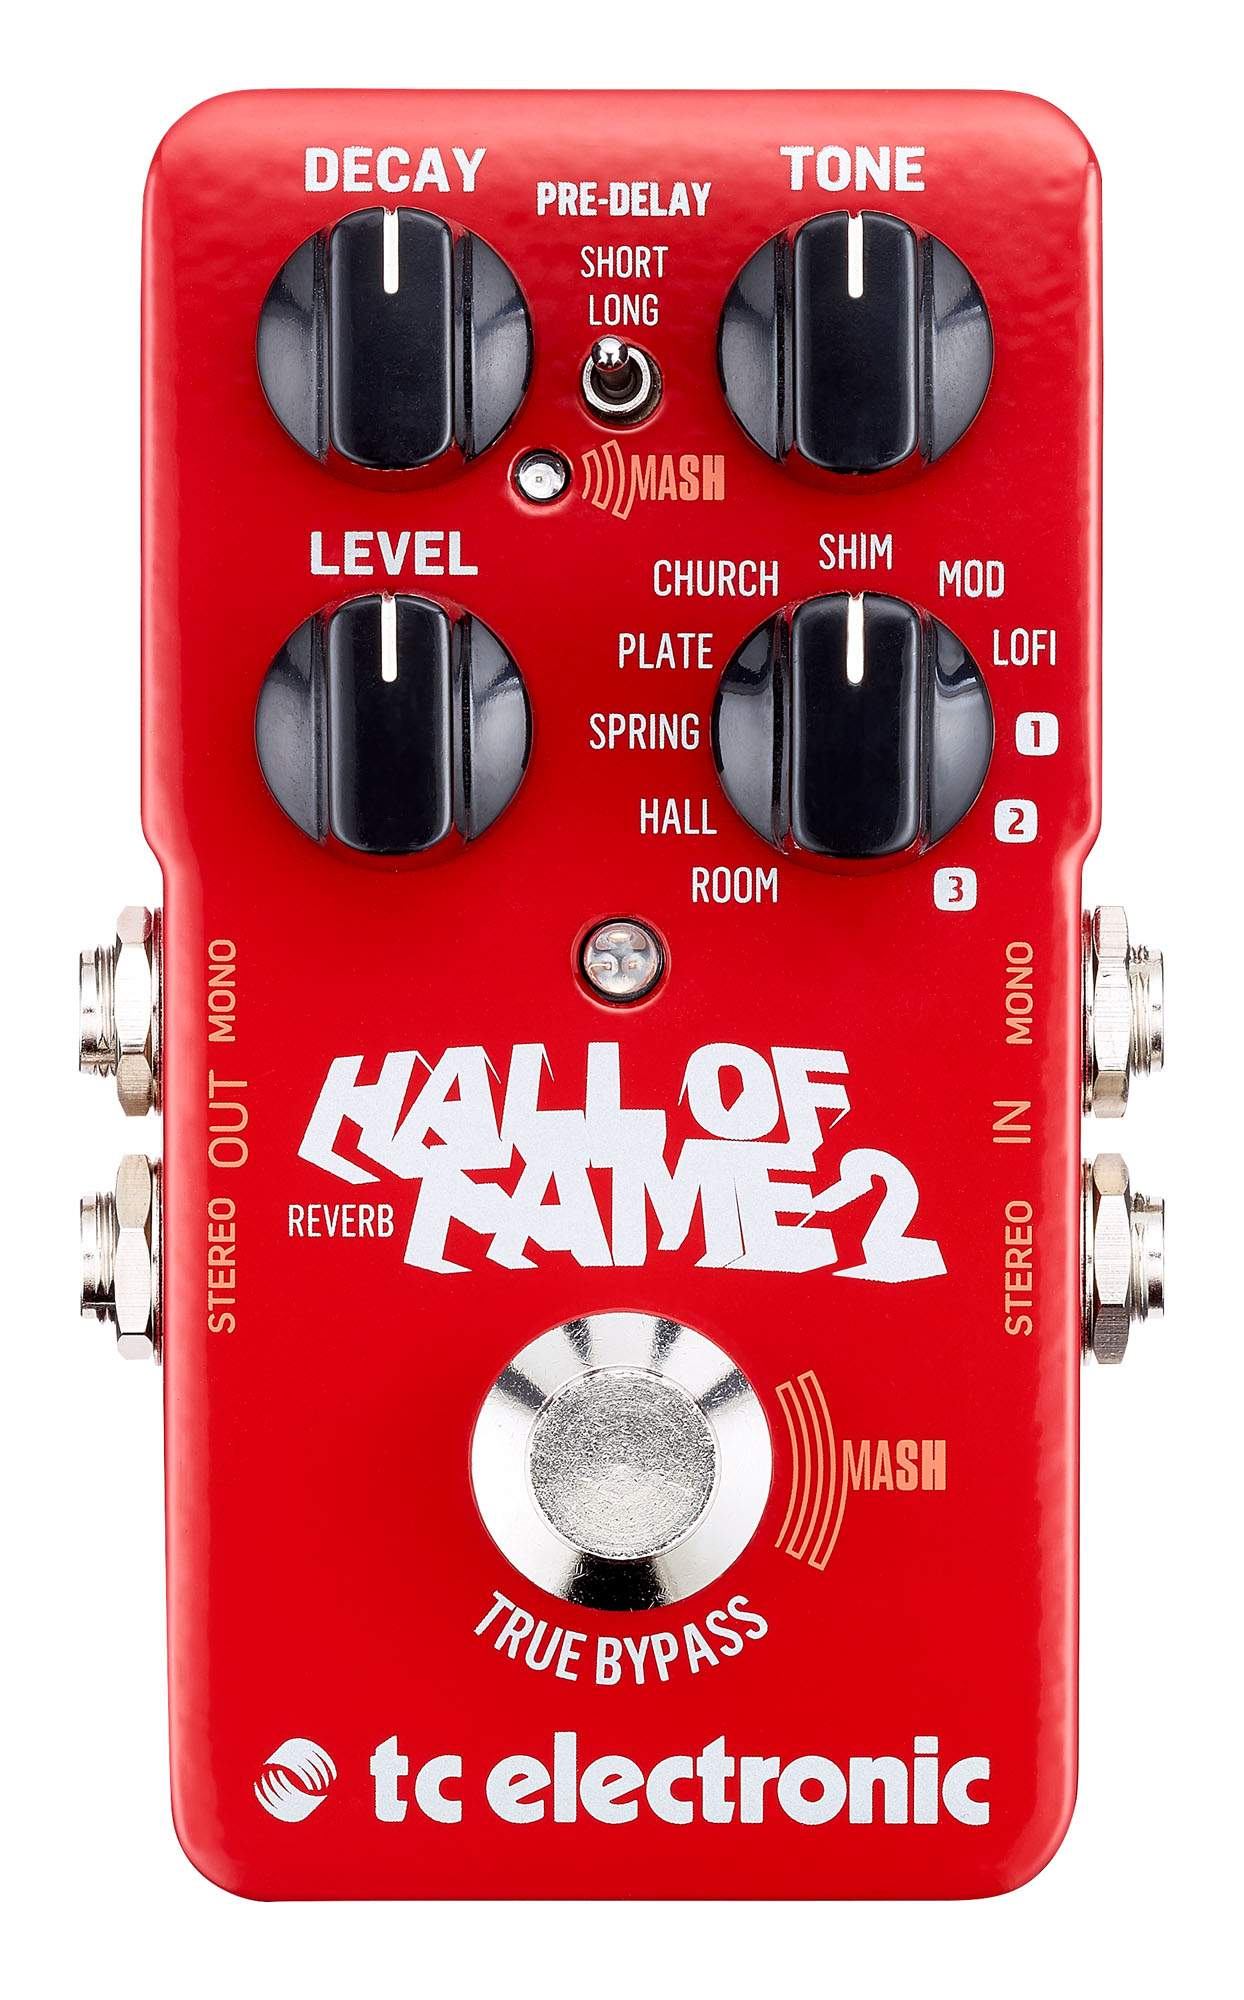 hall-of-fame-2-reverb-front-hires.